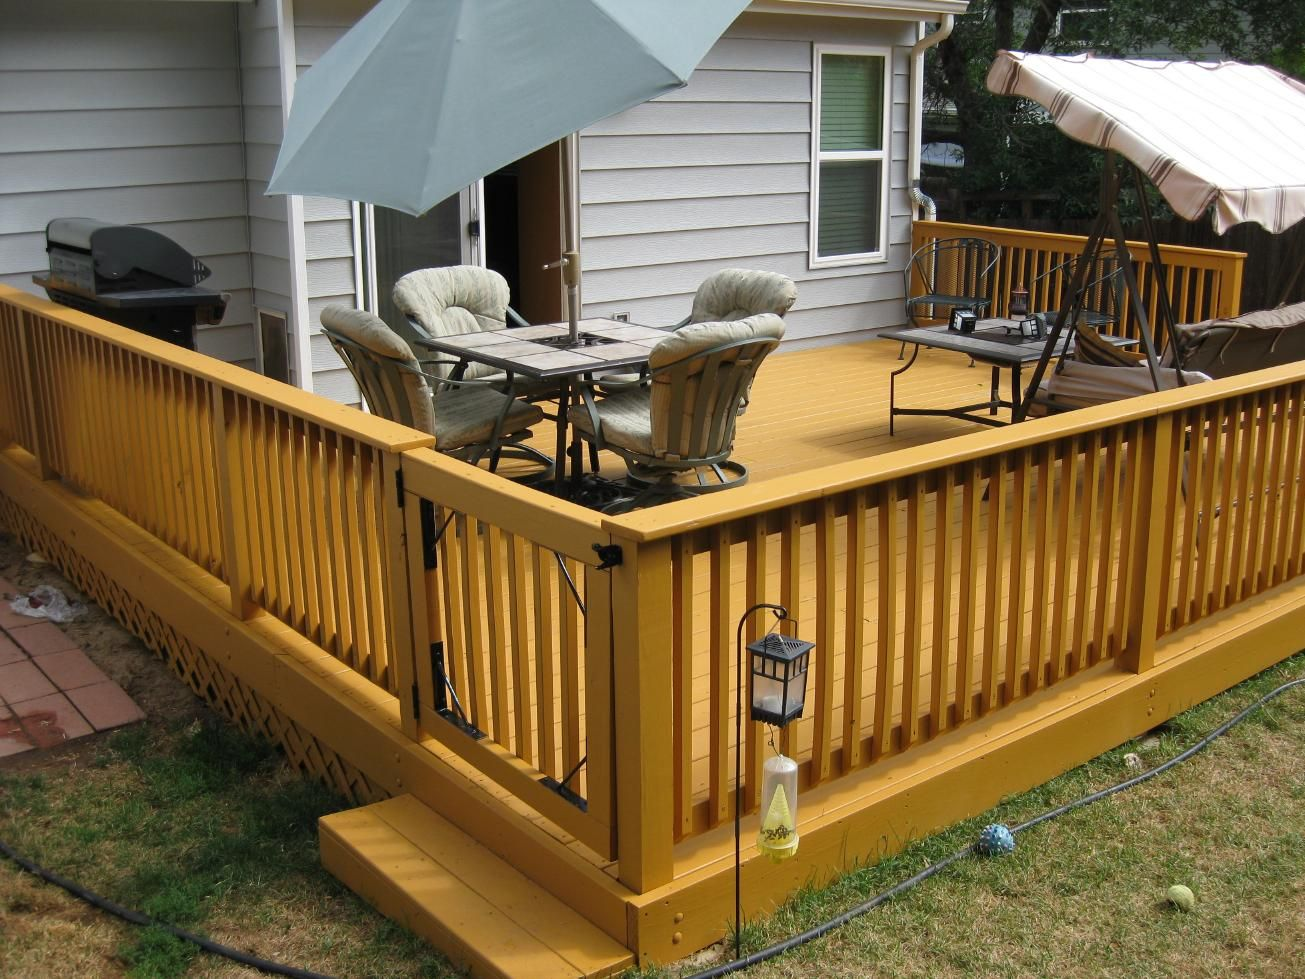 deck designs custom treated deck design take a walk down briar street - Home Deck Design